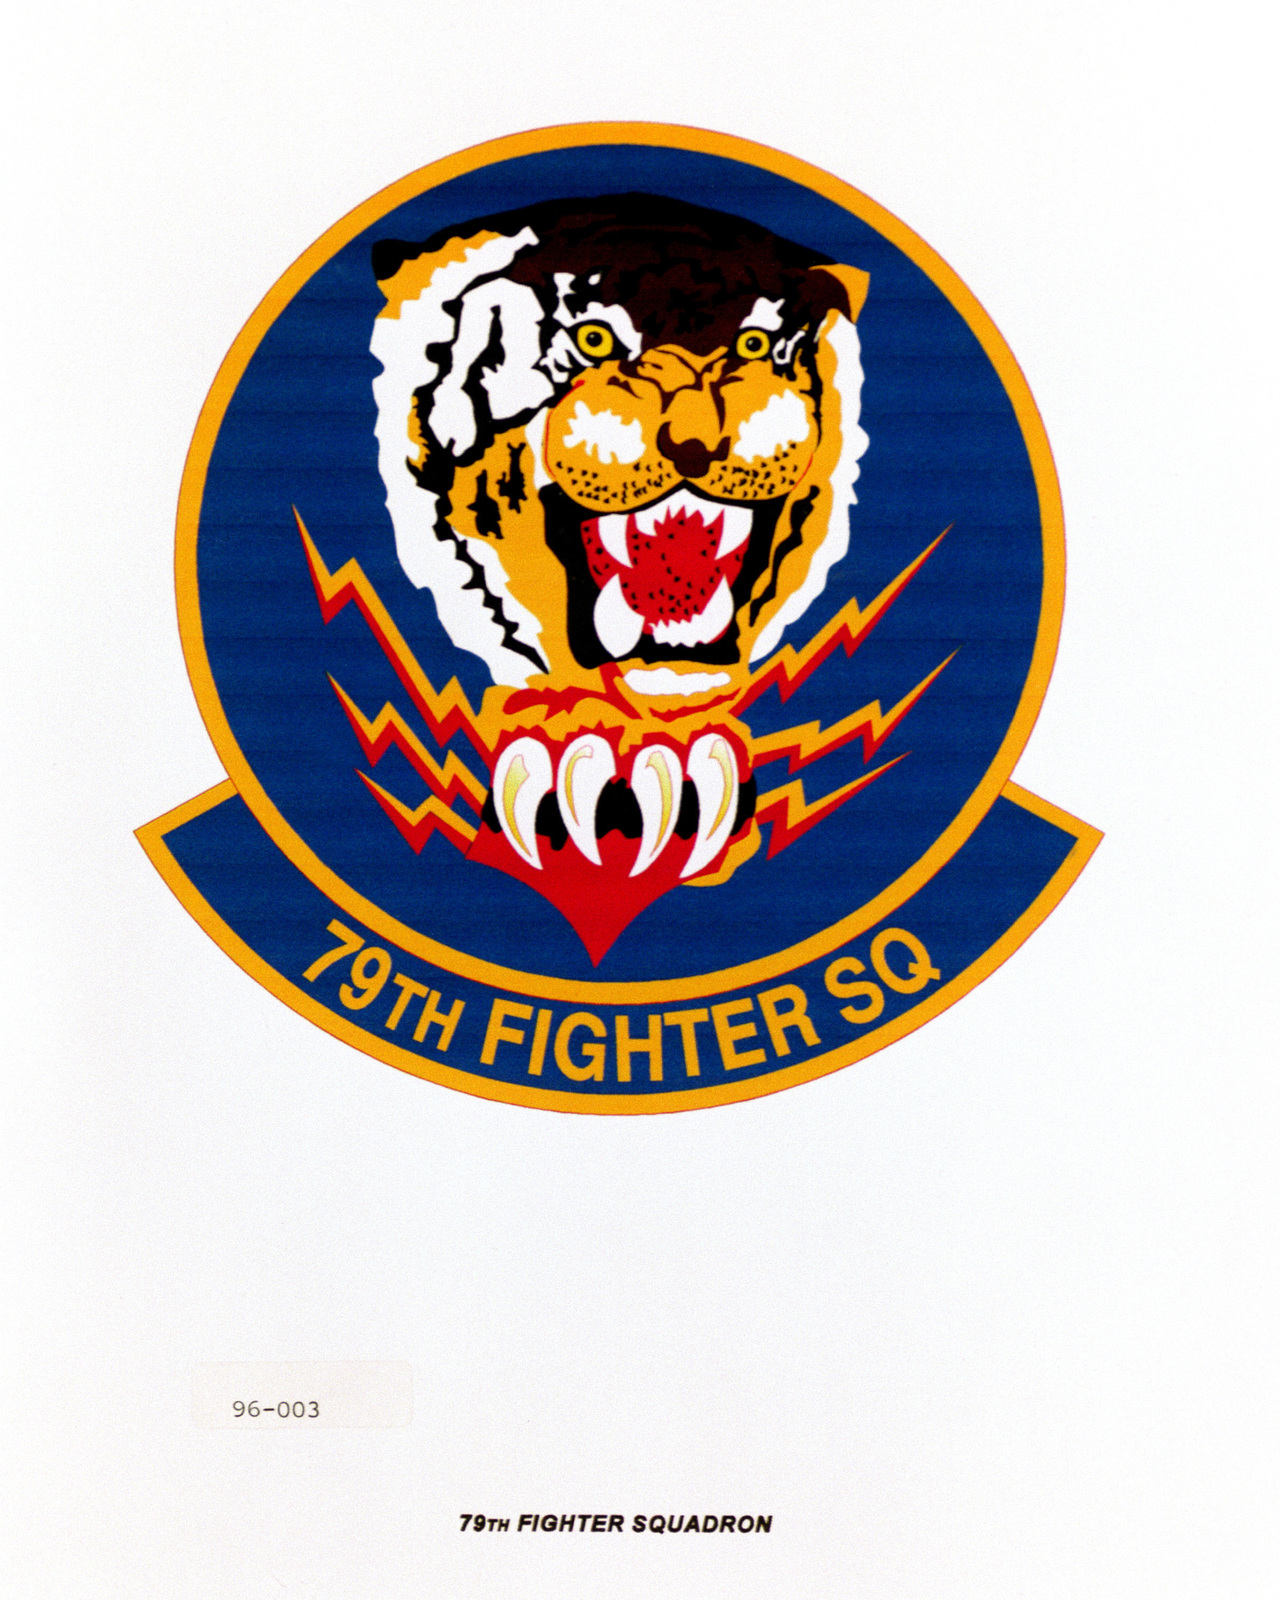 Approved Insignia for the 79th Fighter Squadron Exact Date Shot Unknown